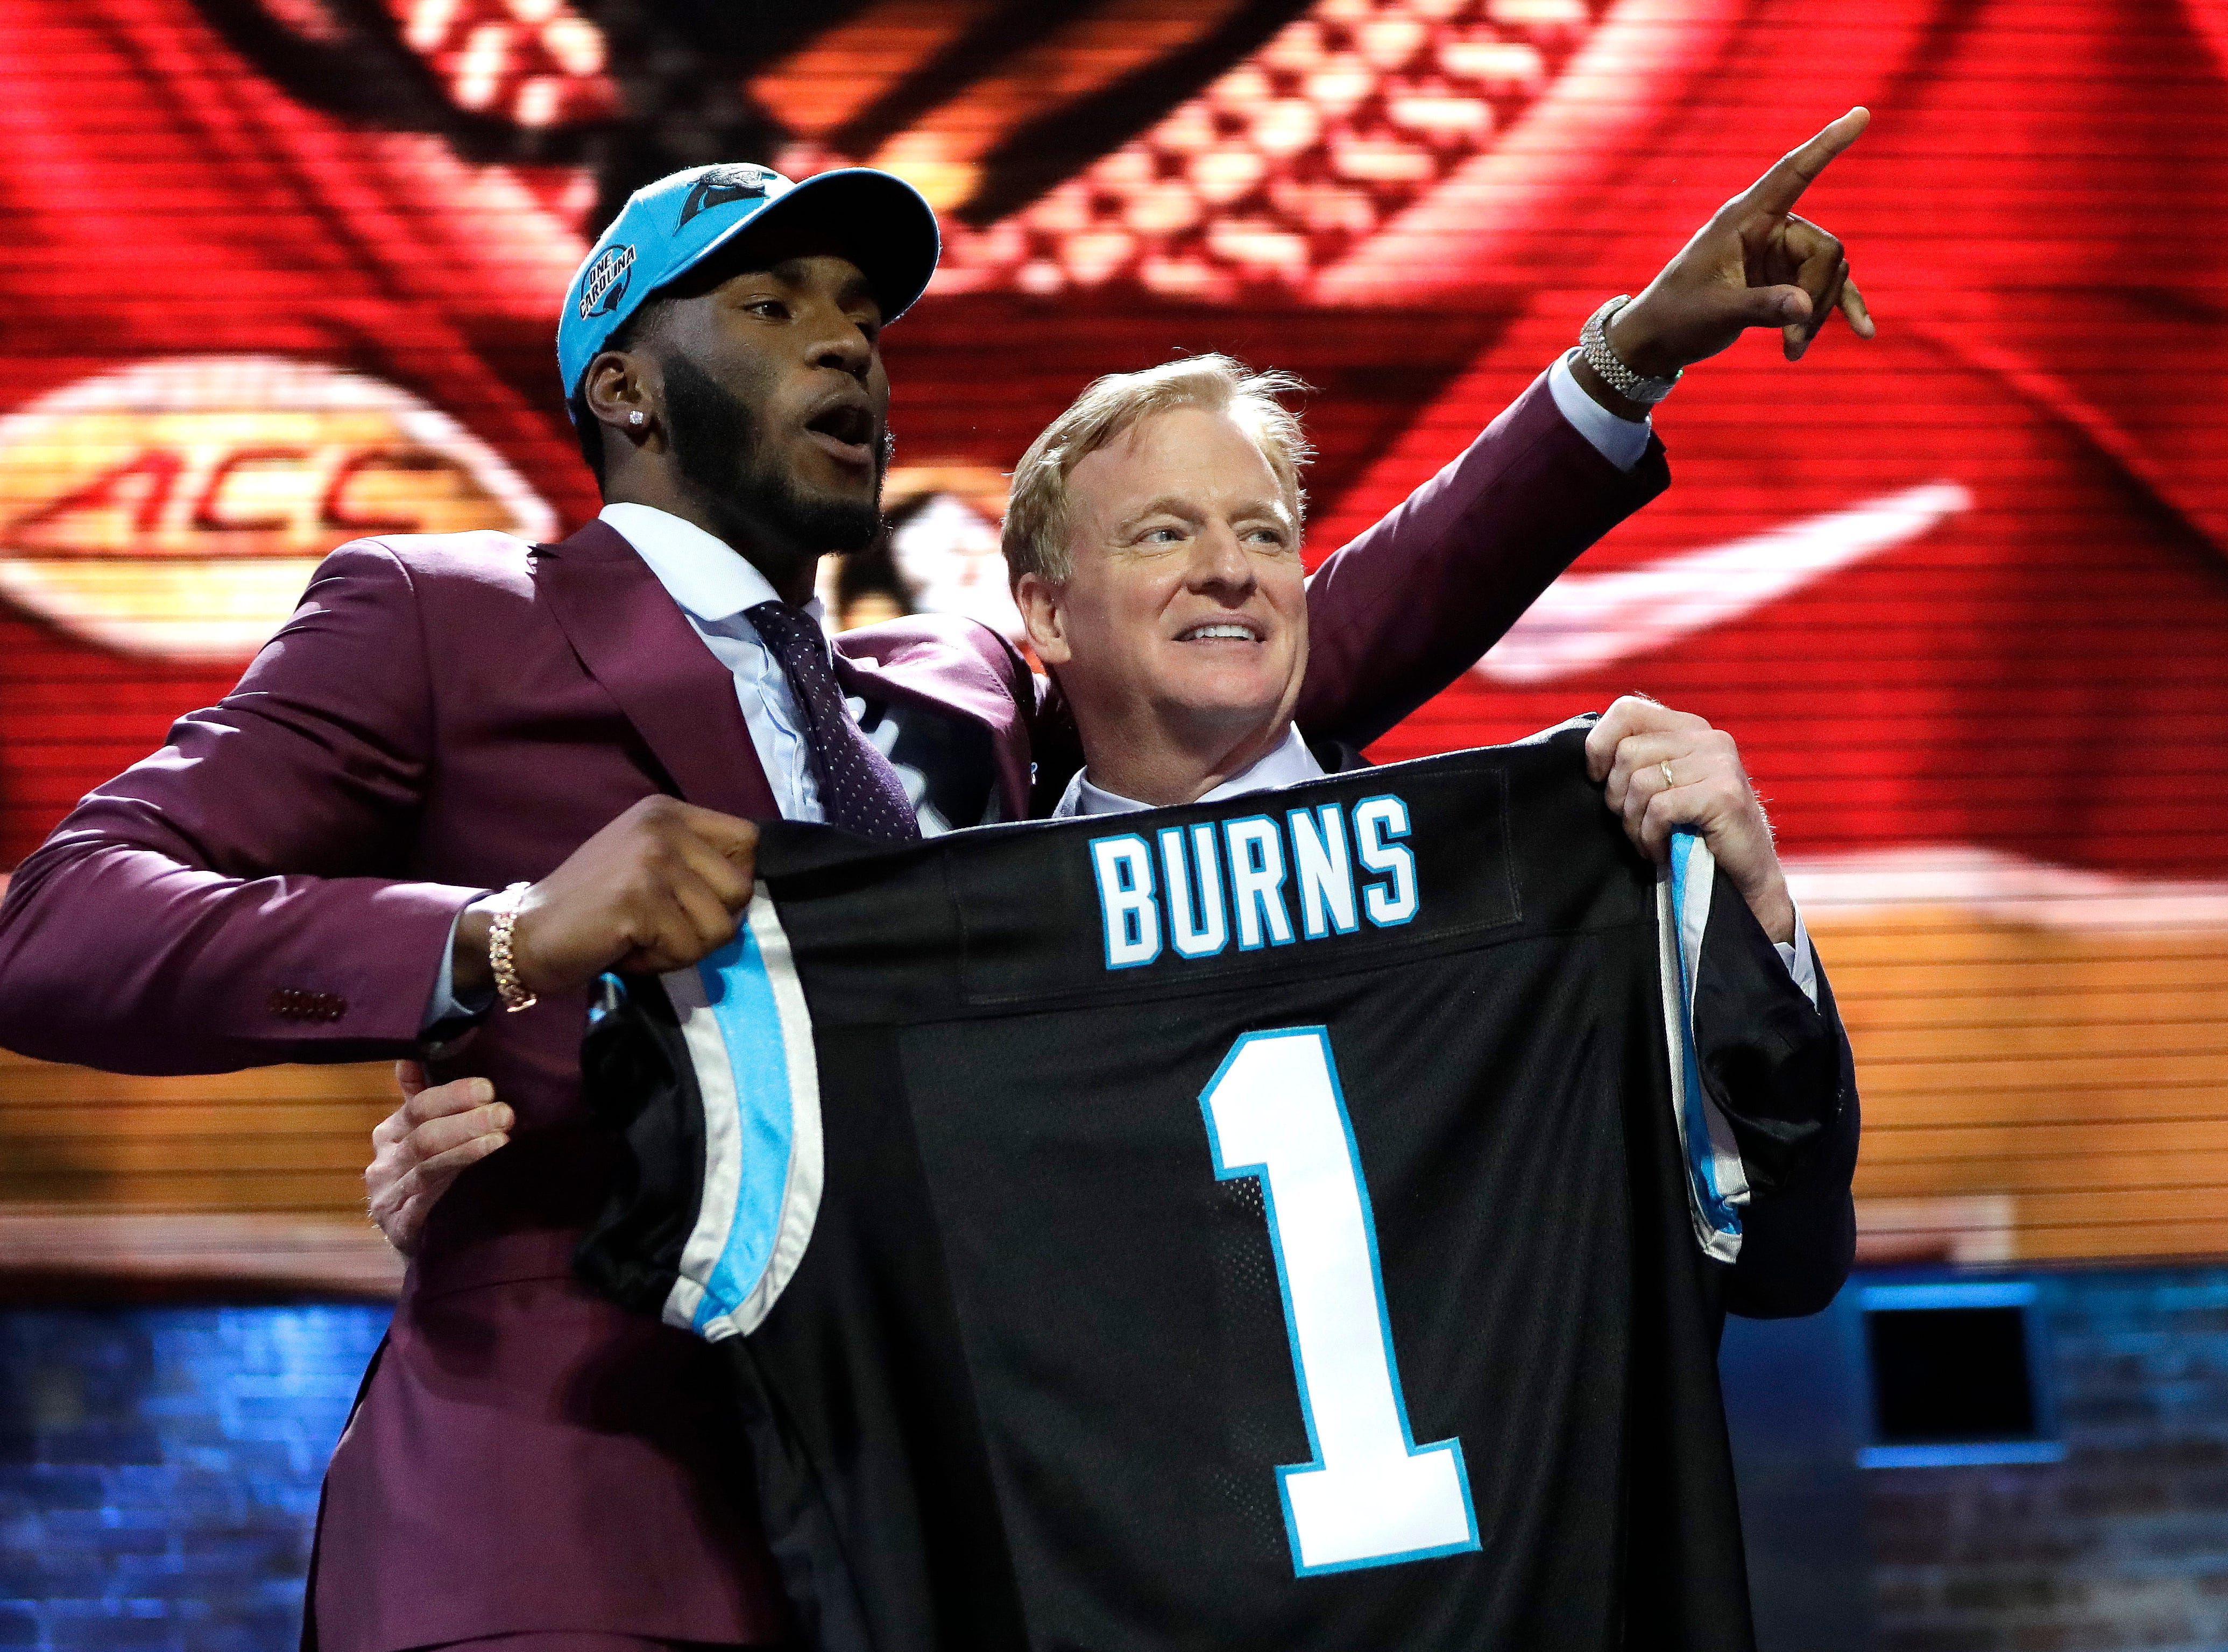 Florida State defensive end Brian Burns poses with NFL Commissioner Roger Goodell after the Carolina Panthers selected Burns in the first round at No. 16 at the NFL football draft, Thursday, April 25, 2019, in Nashville, Tenn. (AP Photo/Mark Humphrey)